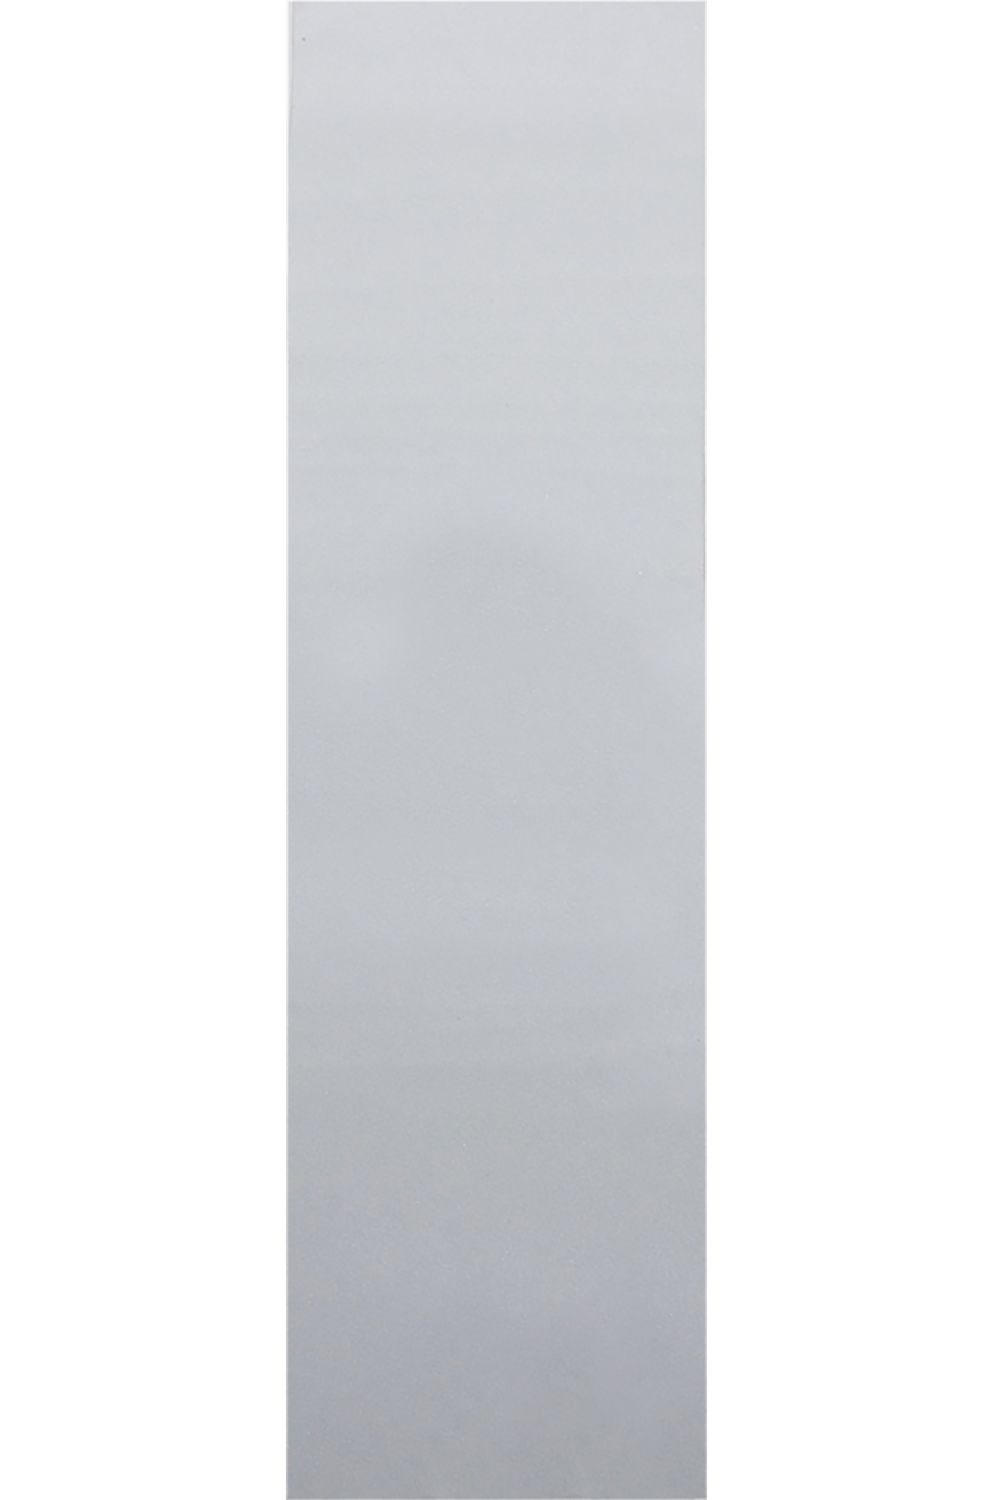 Element Skate Grip CLEAR BLANK Assorted